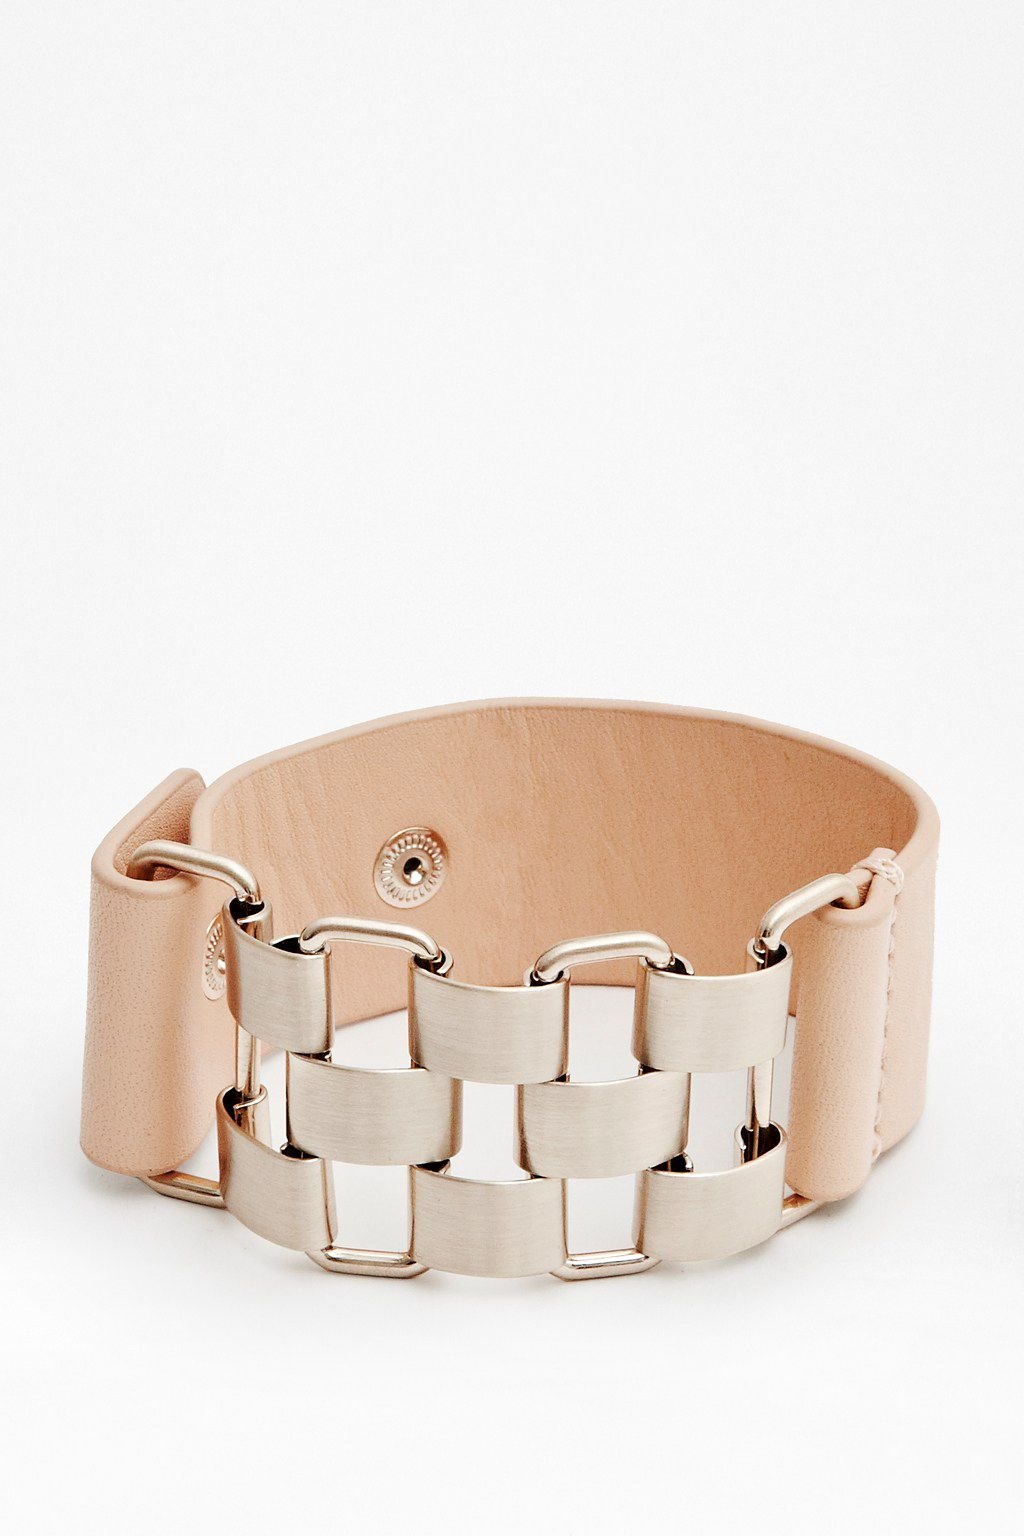 Multi link&leather strap bracelet